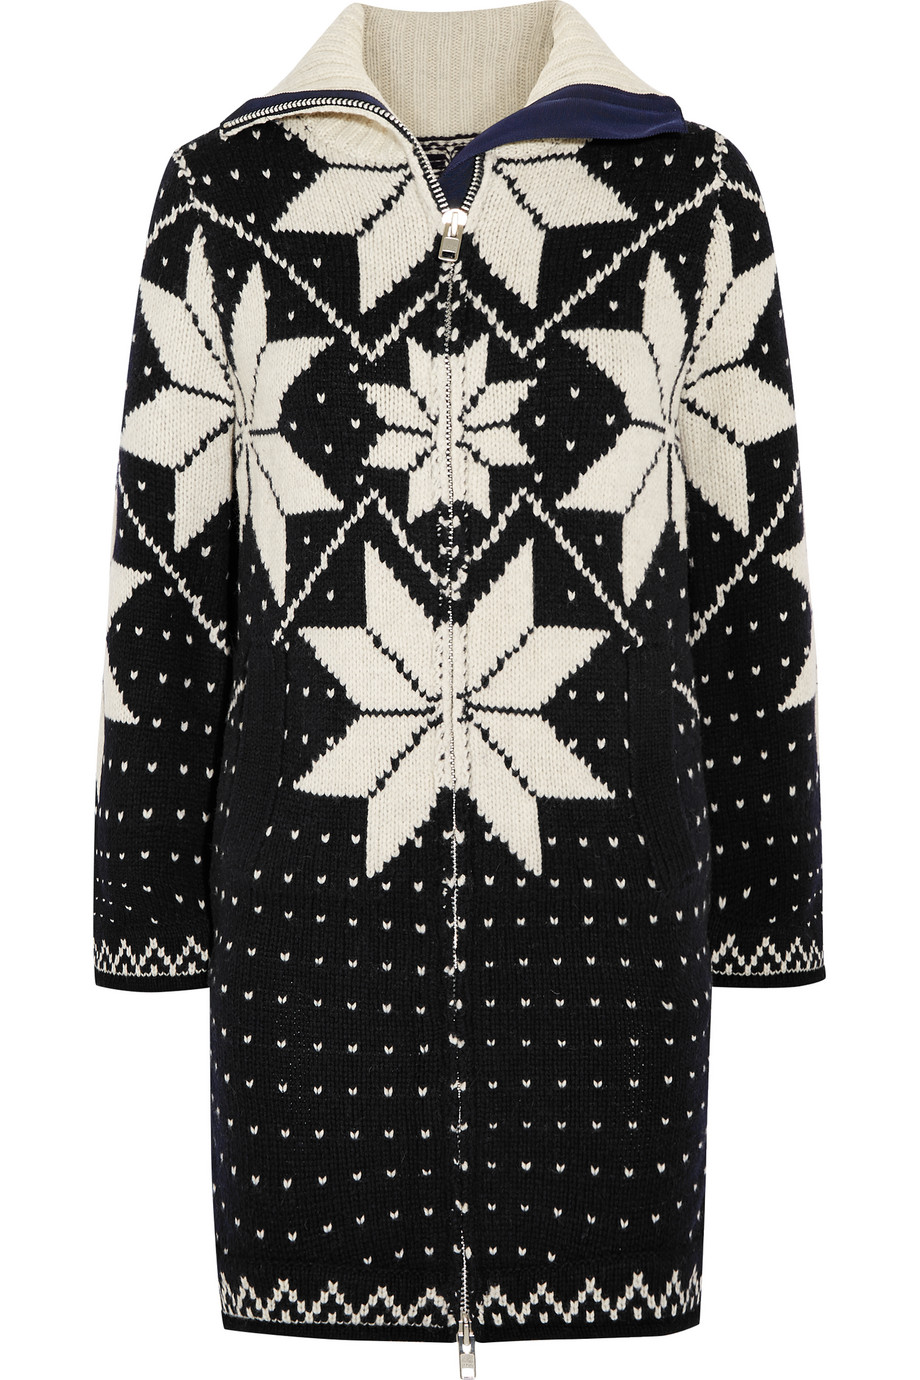 Sacai Fair Isle Intarsia Wool-Blend Sweater Dress, Navy, Women's, Size: 2